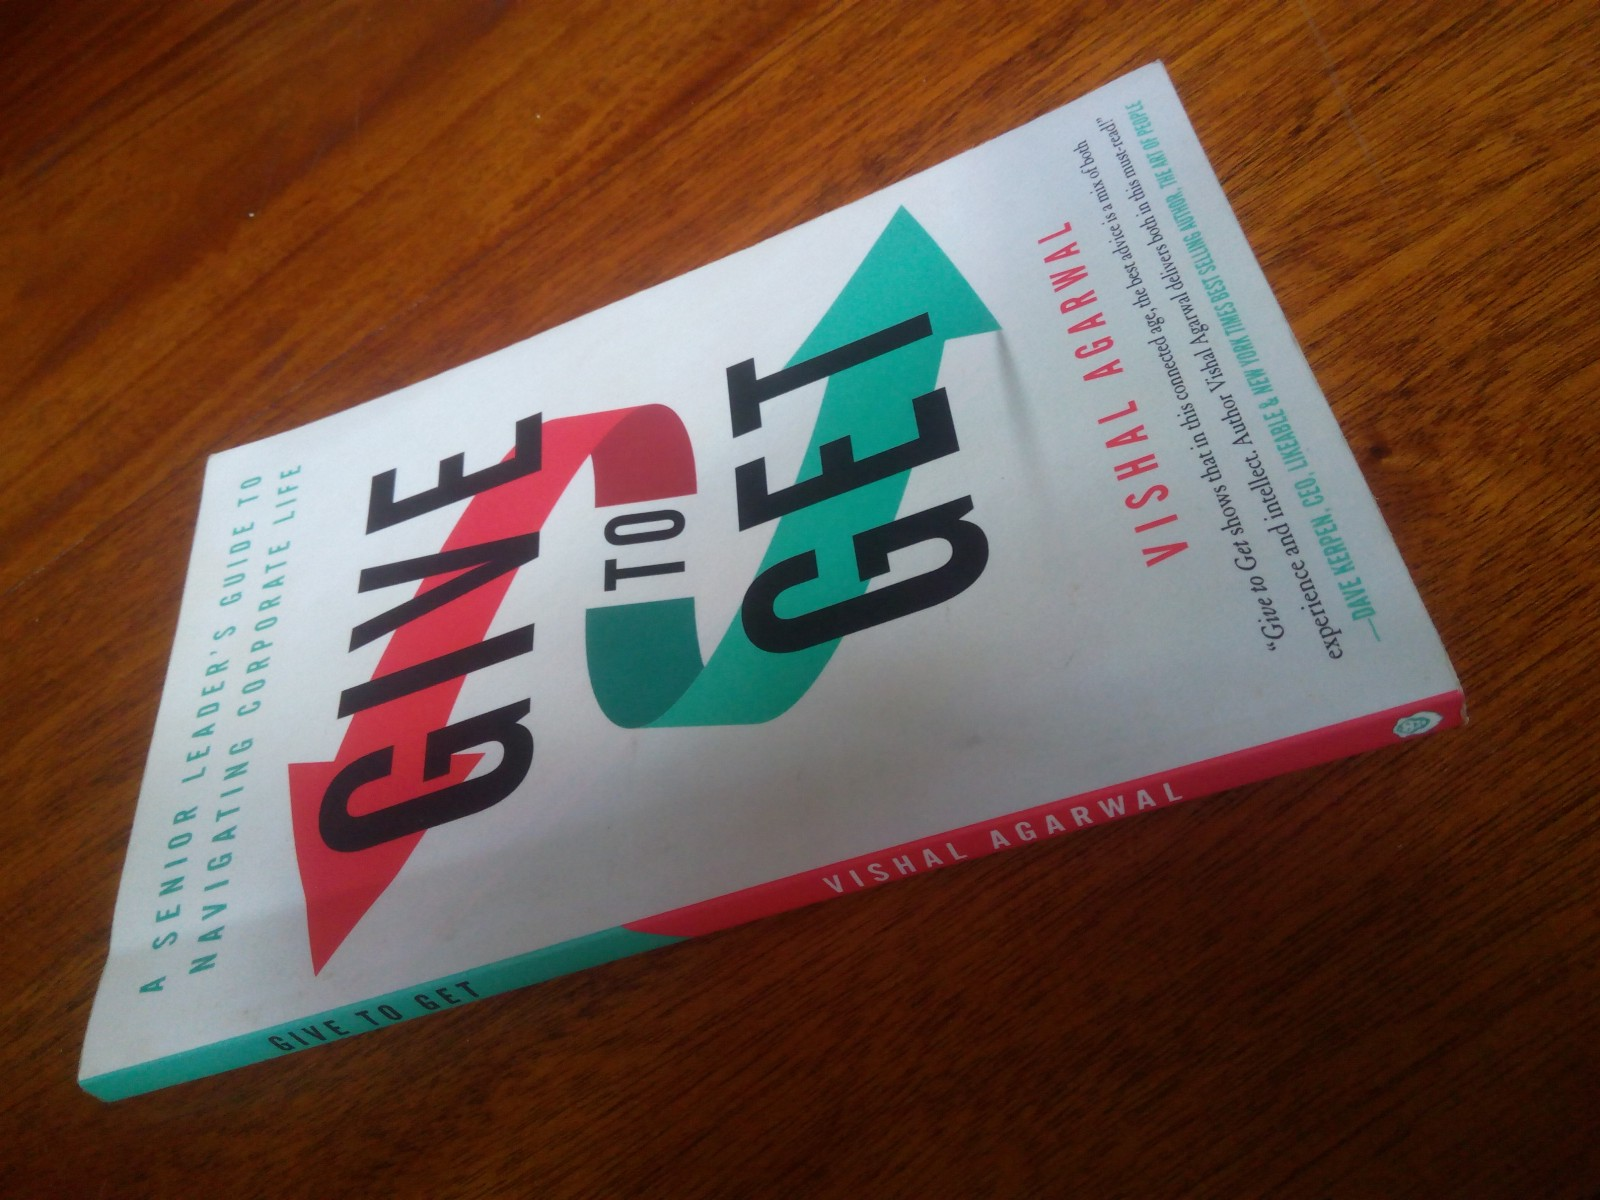 give to get a senior leaders guide to navigating corporate life